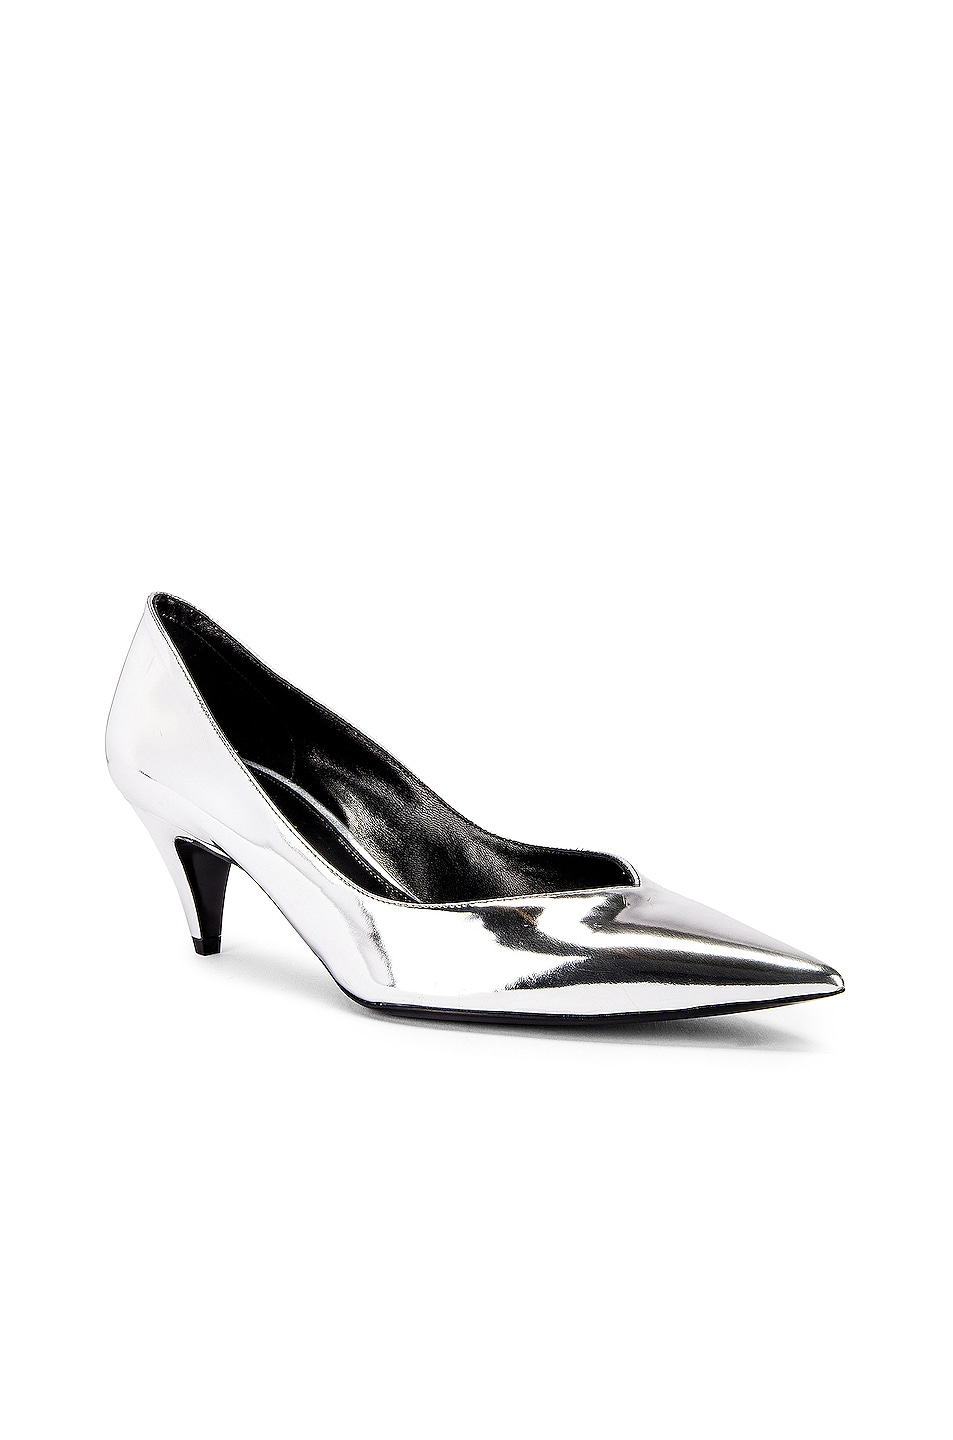 Image 2 of Saint Laurent Kiki Kitten Heels in Silver